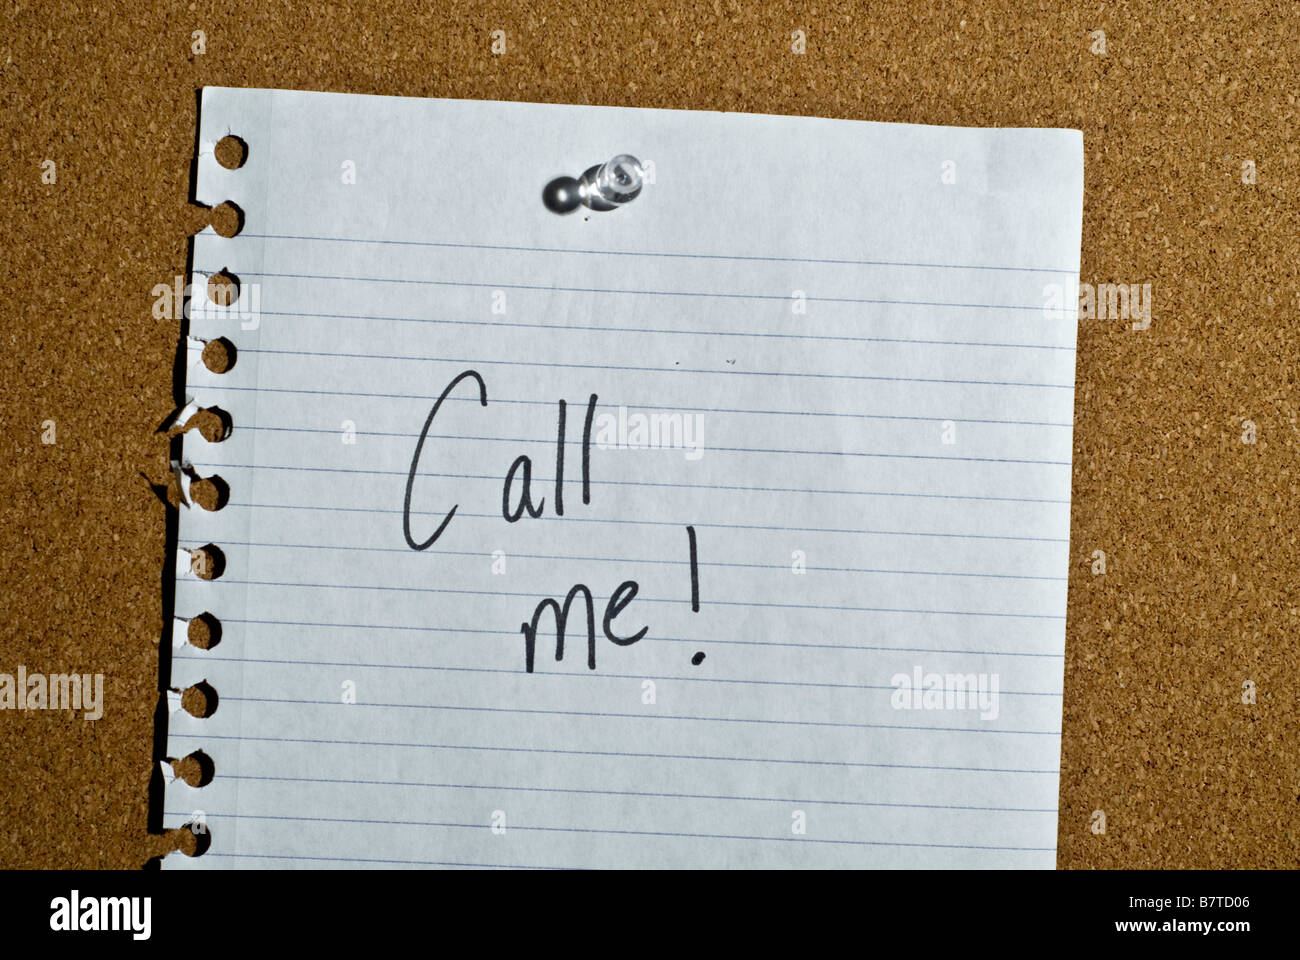 A post it note memo on a cork board that says call me. - Stock Image